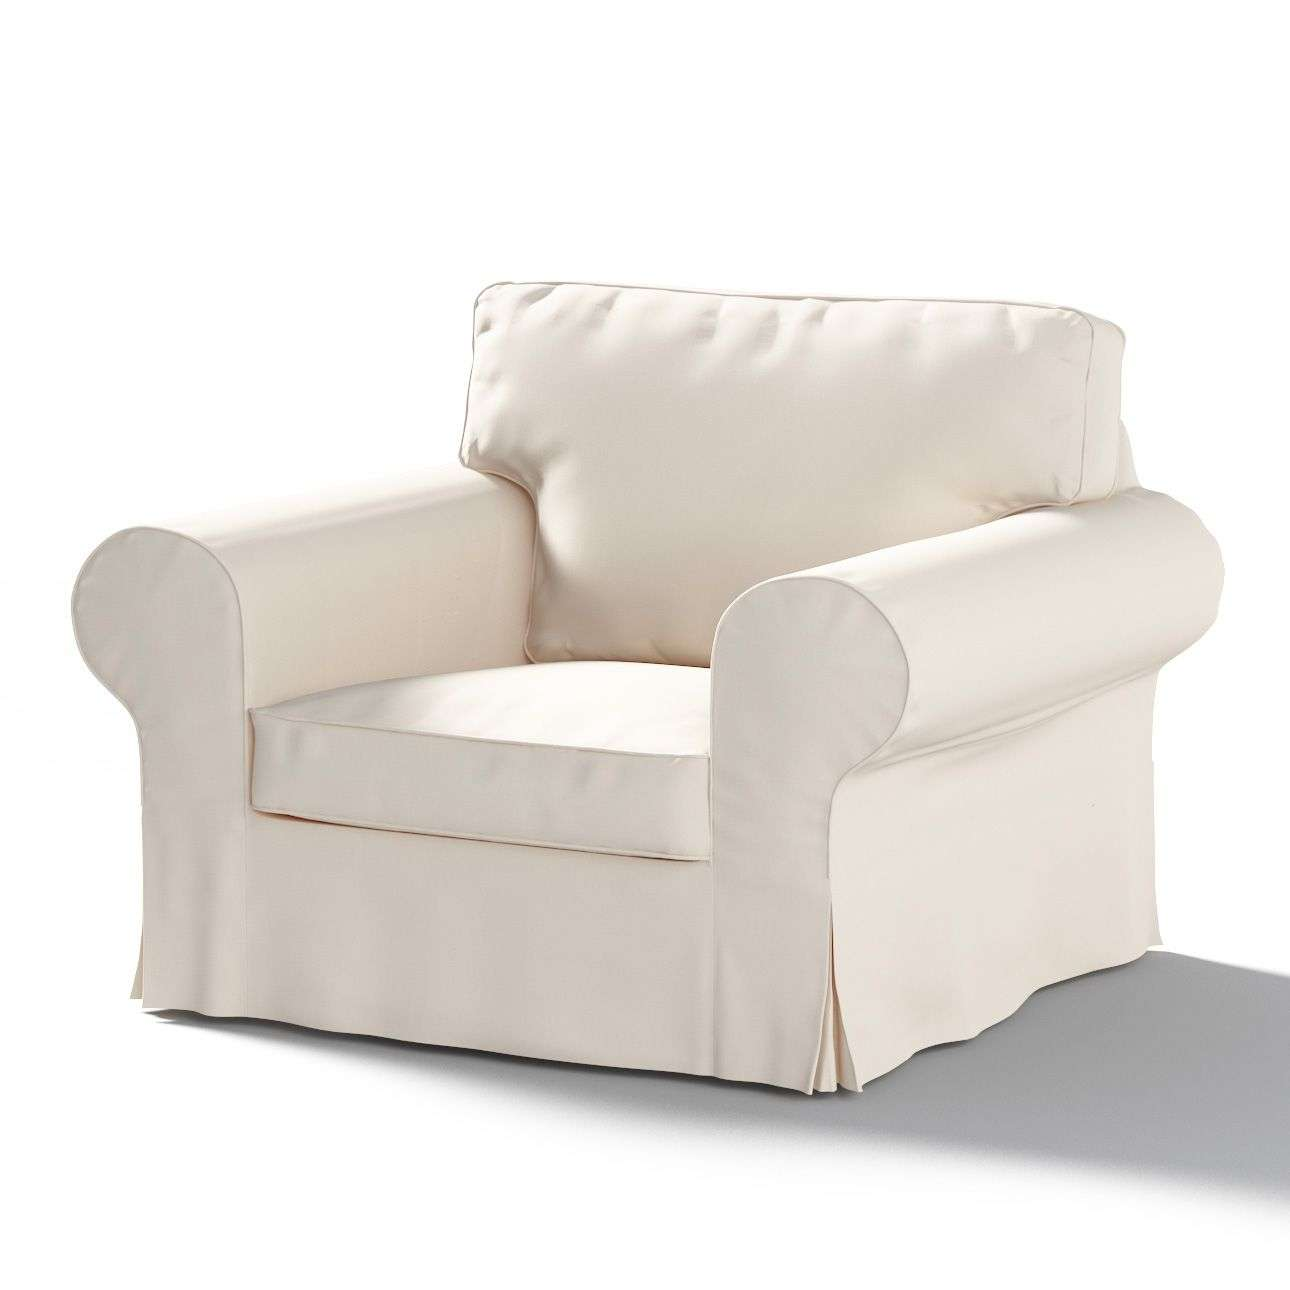 Ikea Ektorp Sofa and Furniture Covers - Dekoria.co.uk